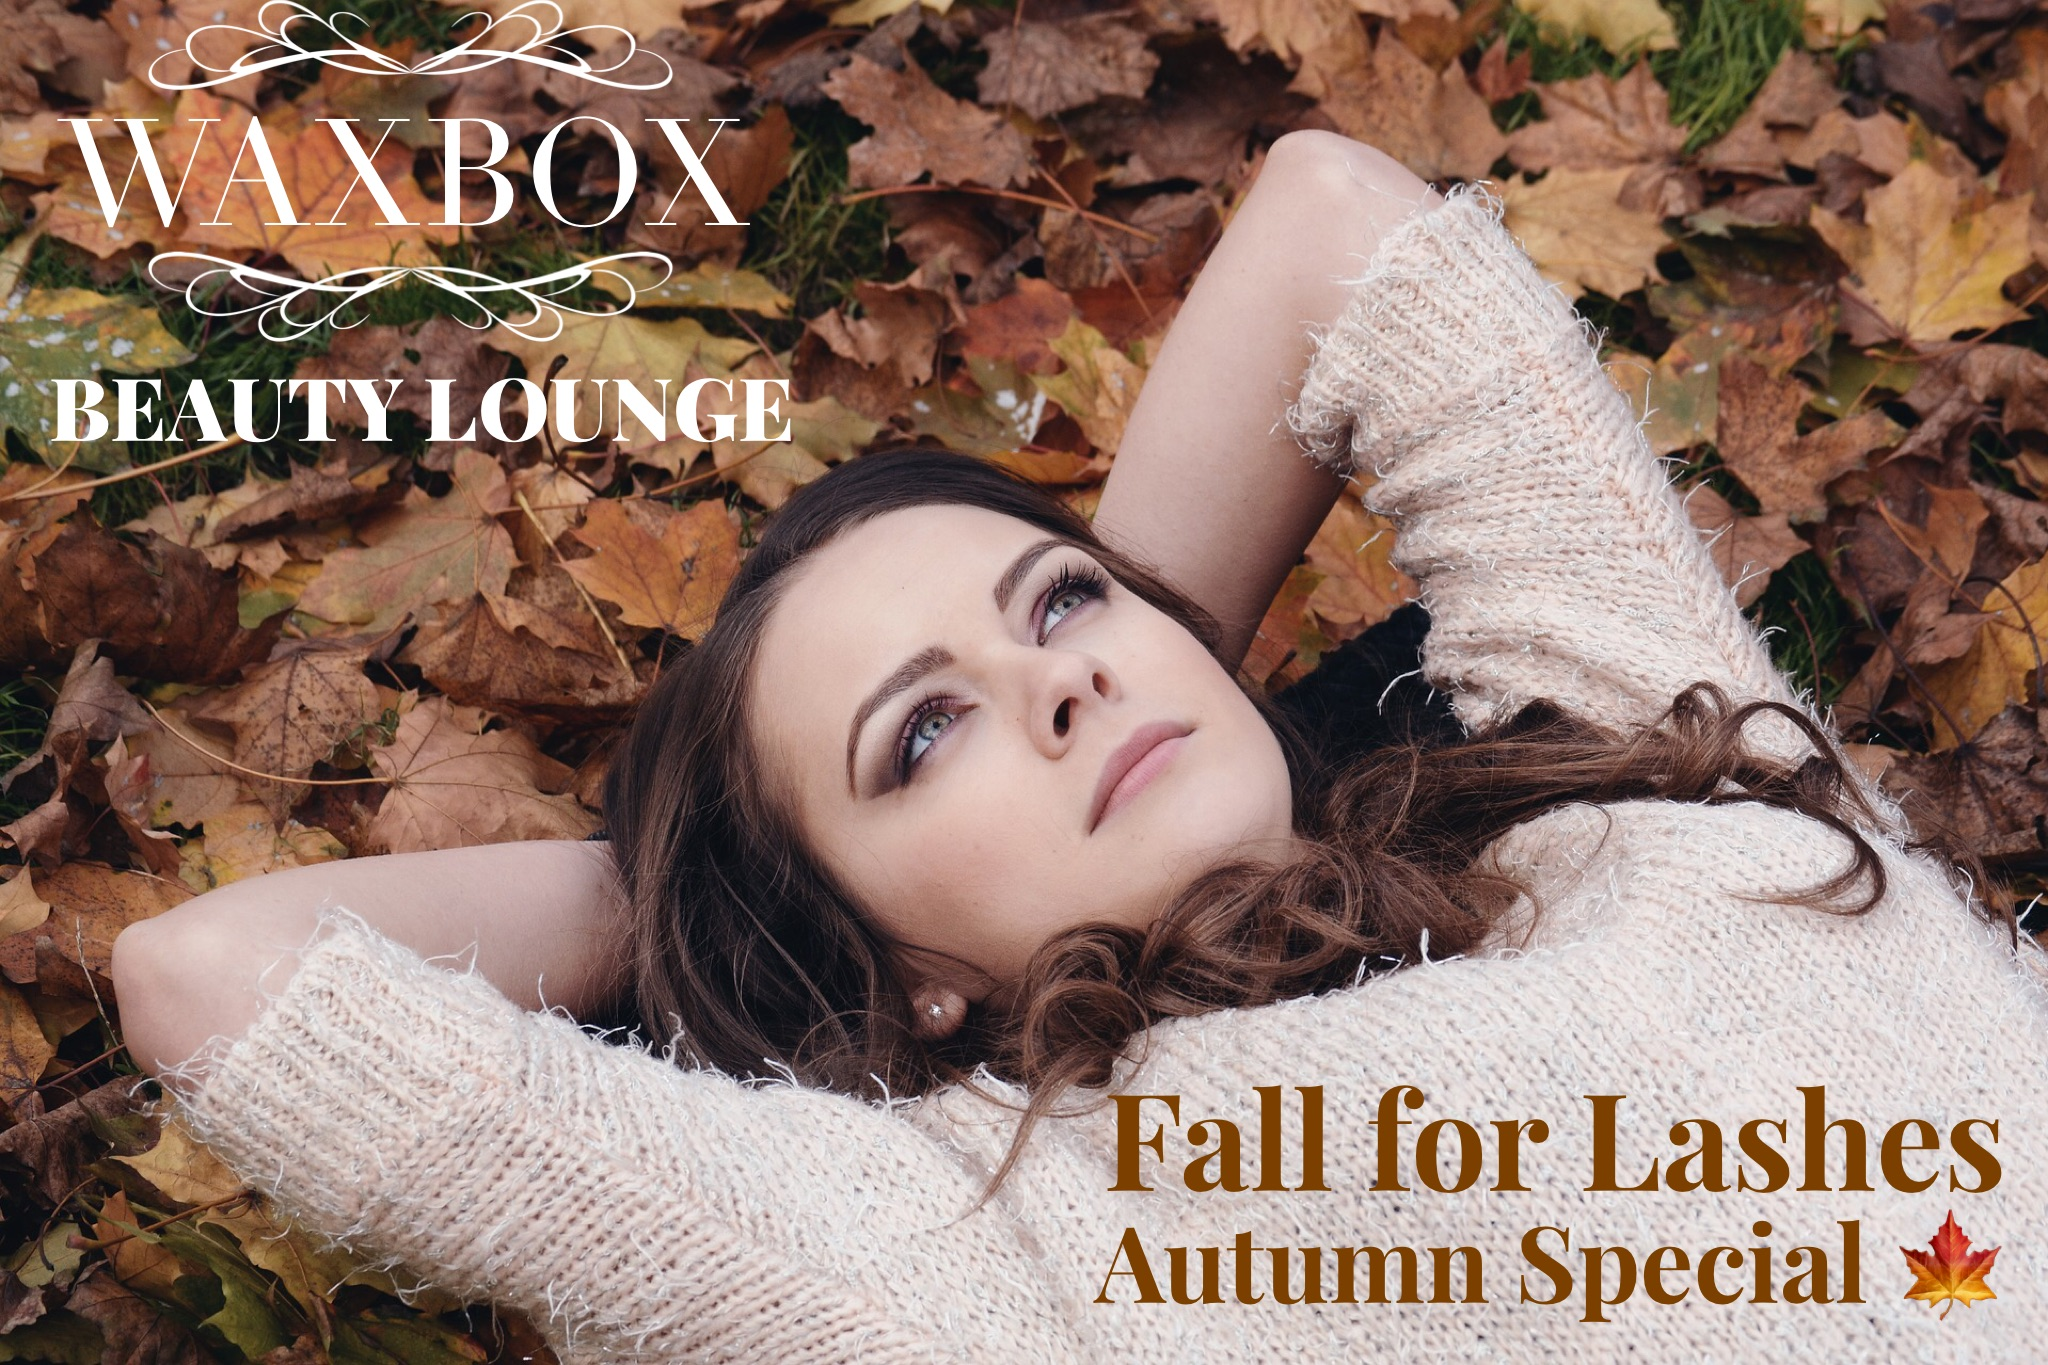 Fall in Love with Lashes this Autumn ????